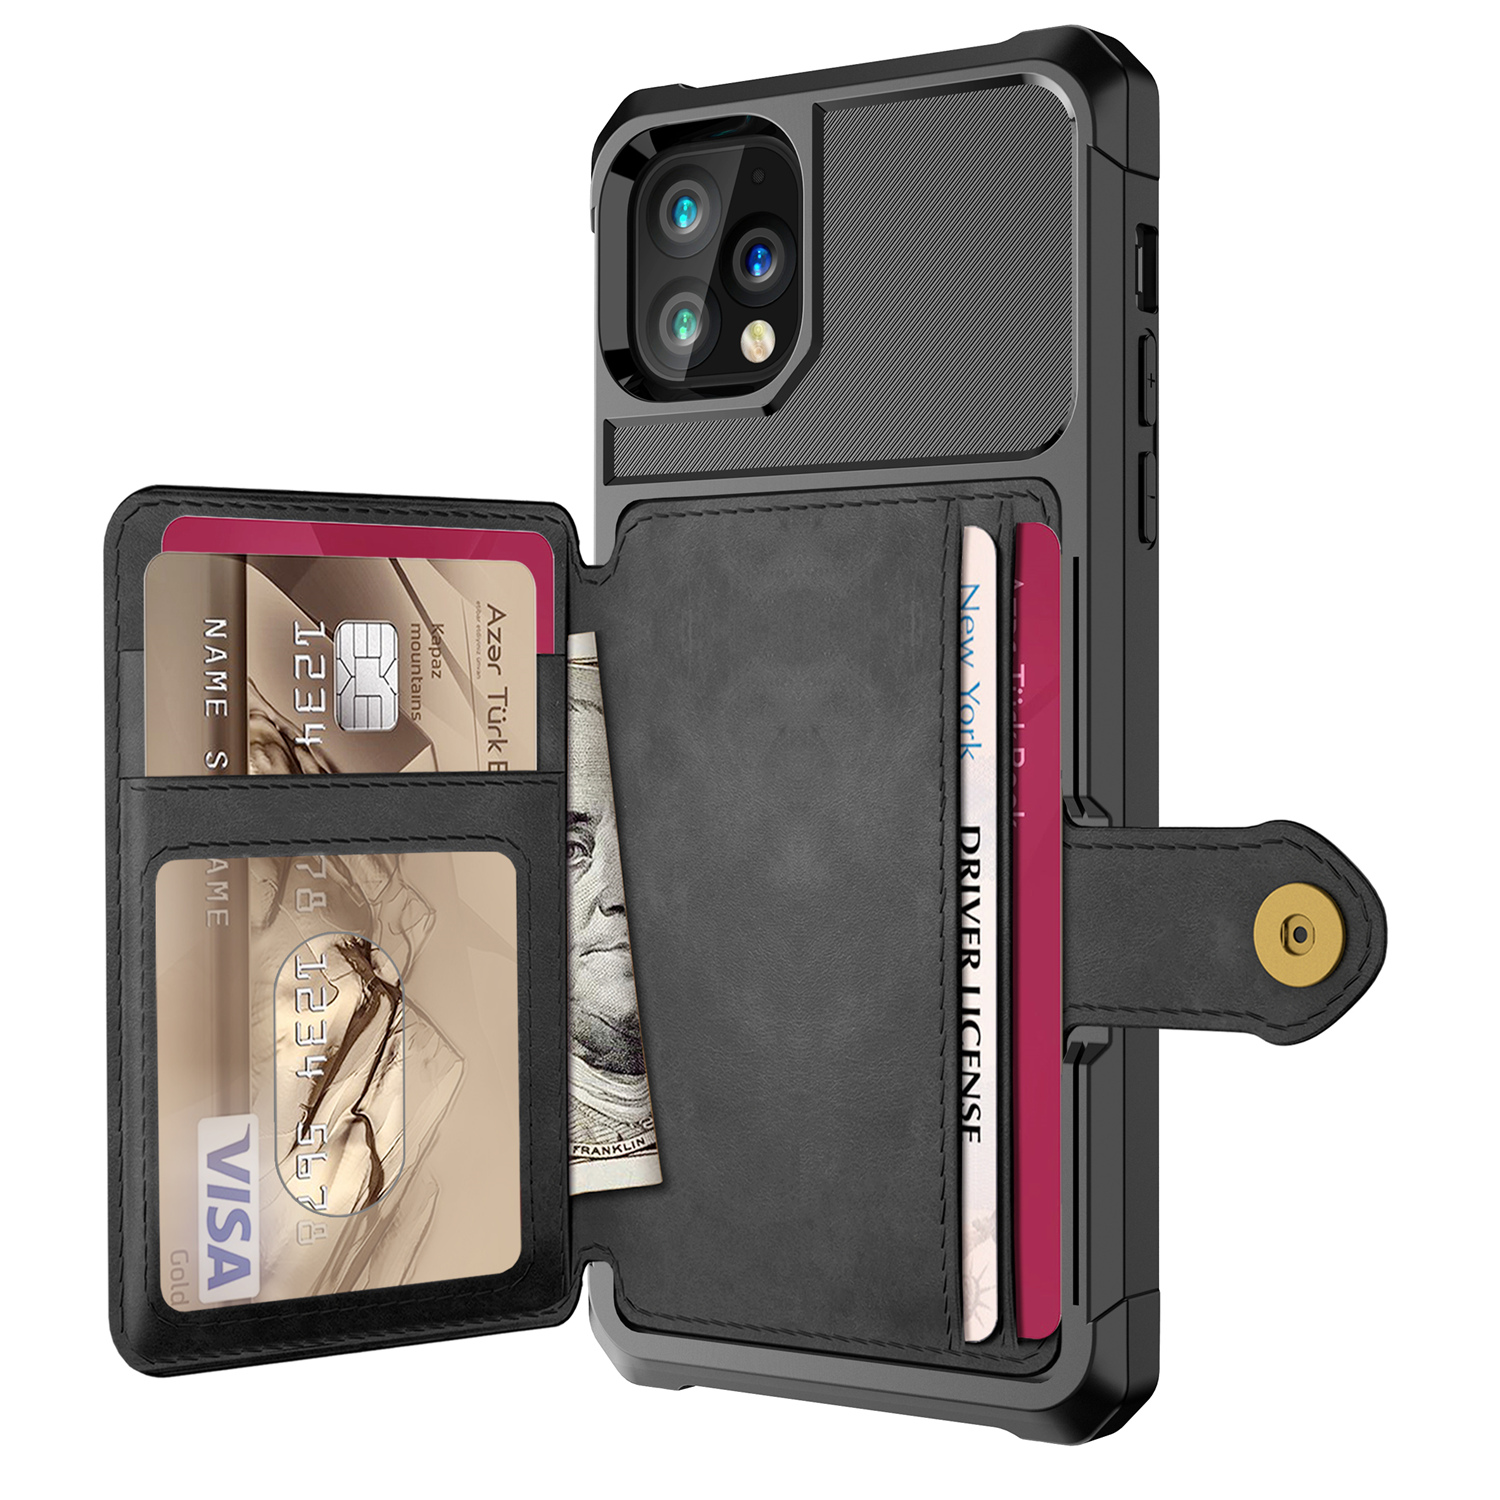 for Apple iPhone 11 Pro Max 11 2019 Case, Credit Card PU Leather Flip Wallet Photo Holder Hard Back Cover For iPhone 11 Max 2019